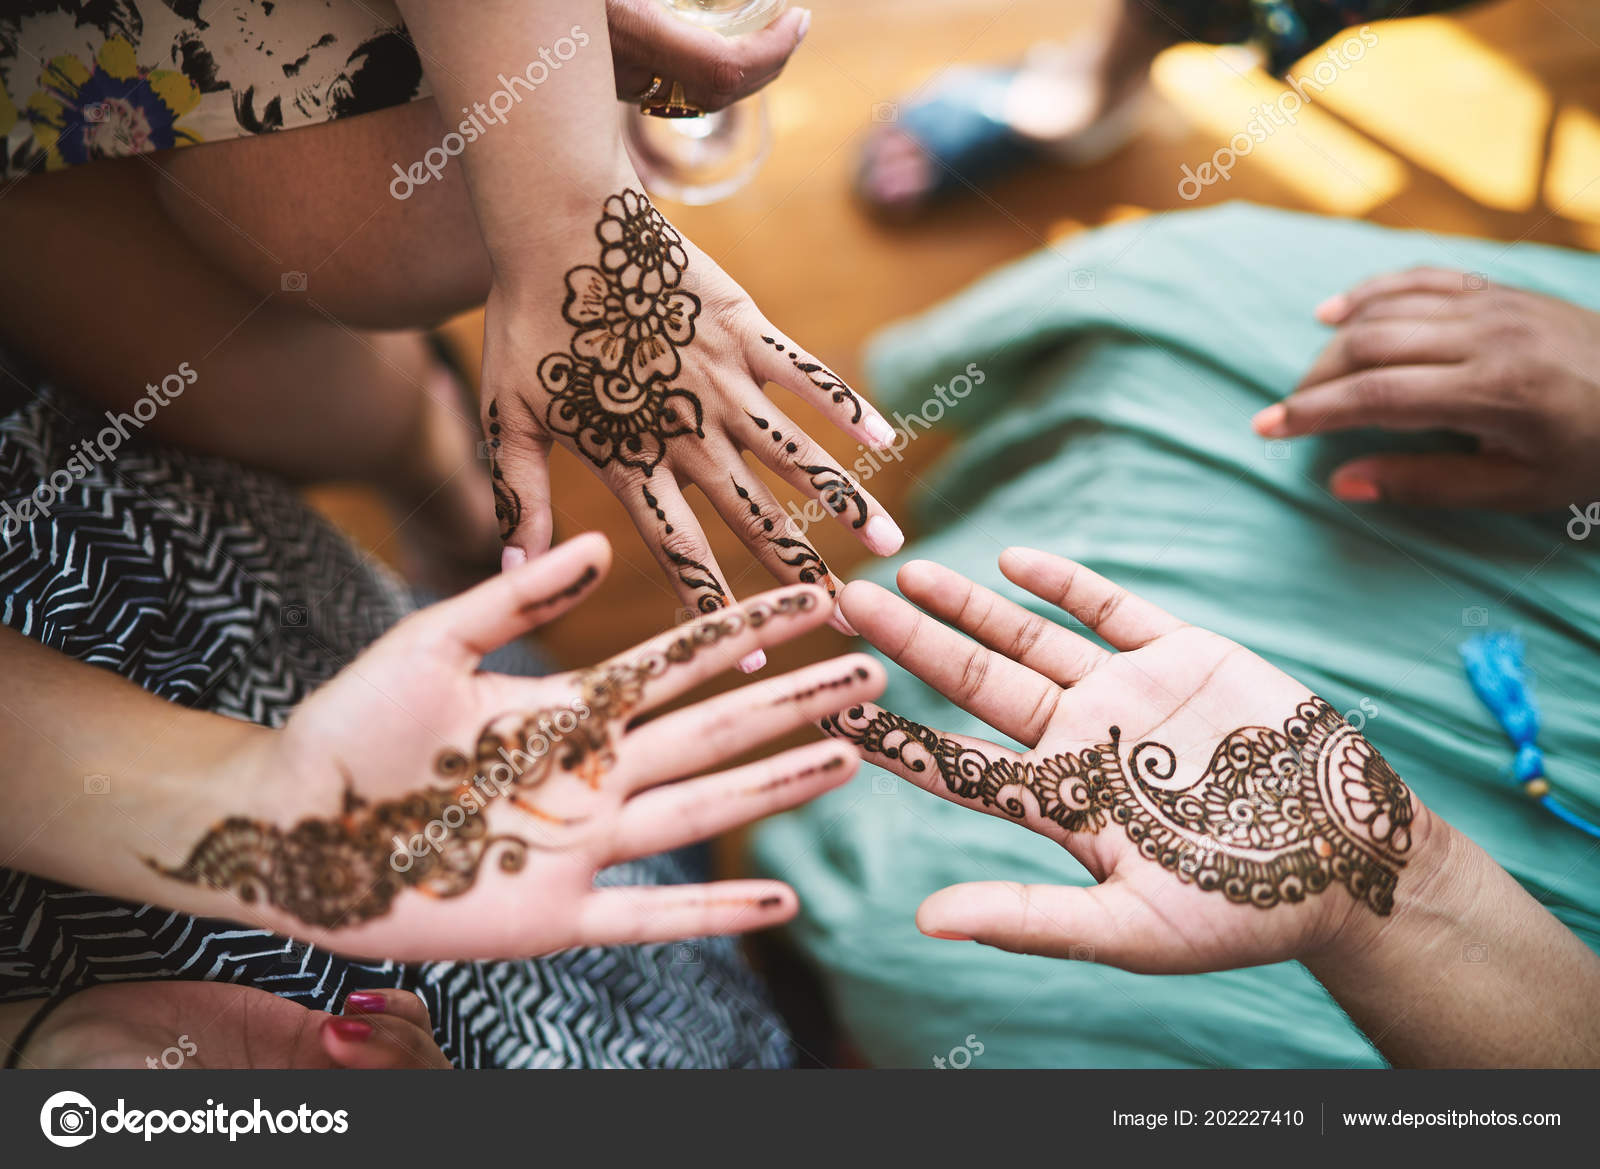 Indian Women Showing Hand Henna Tattoo Art Mehndi Indian Wedding